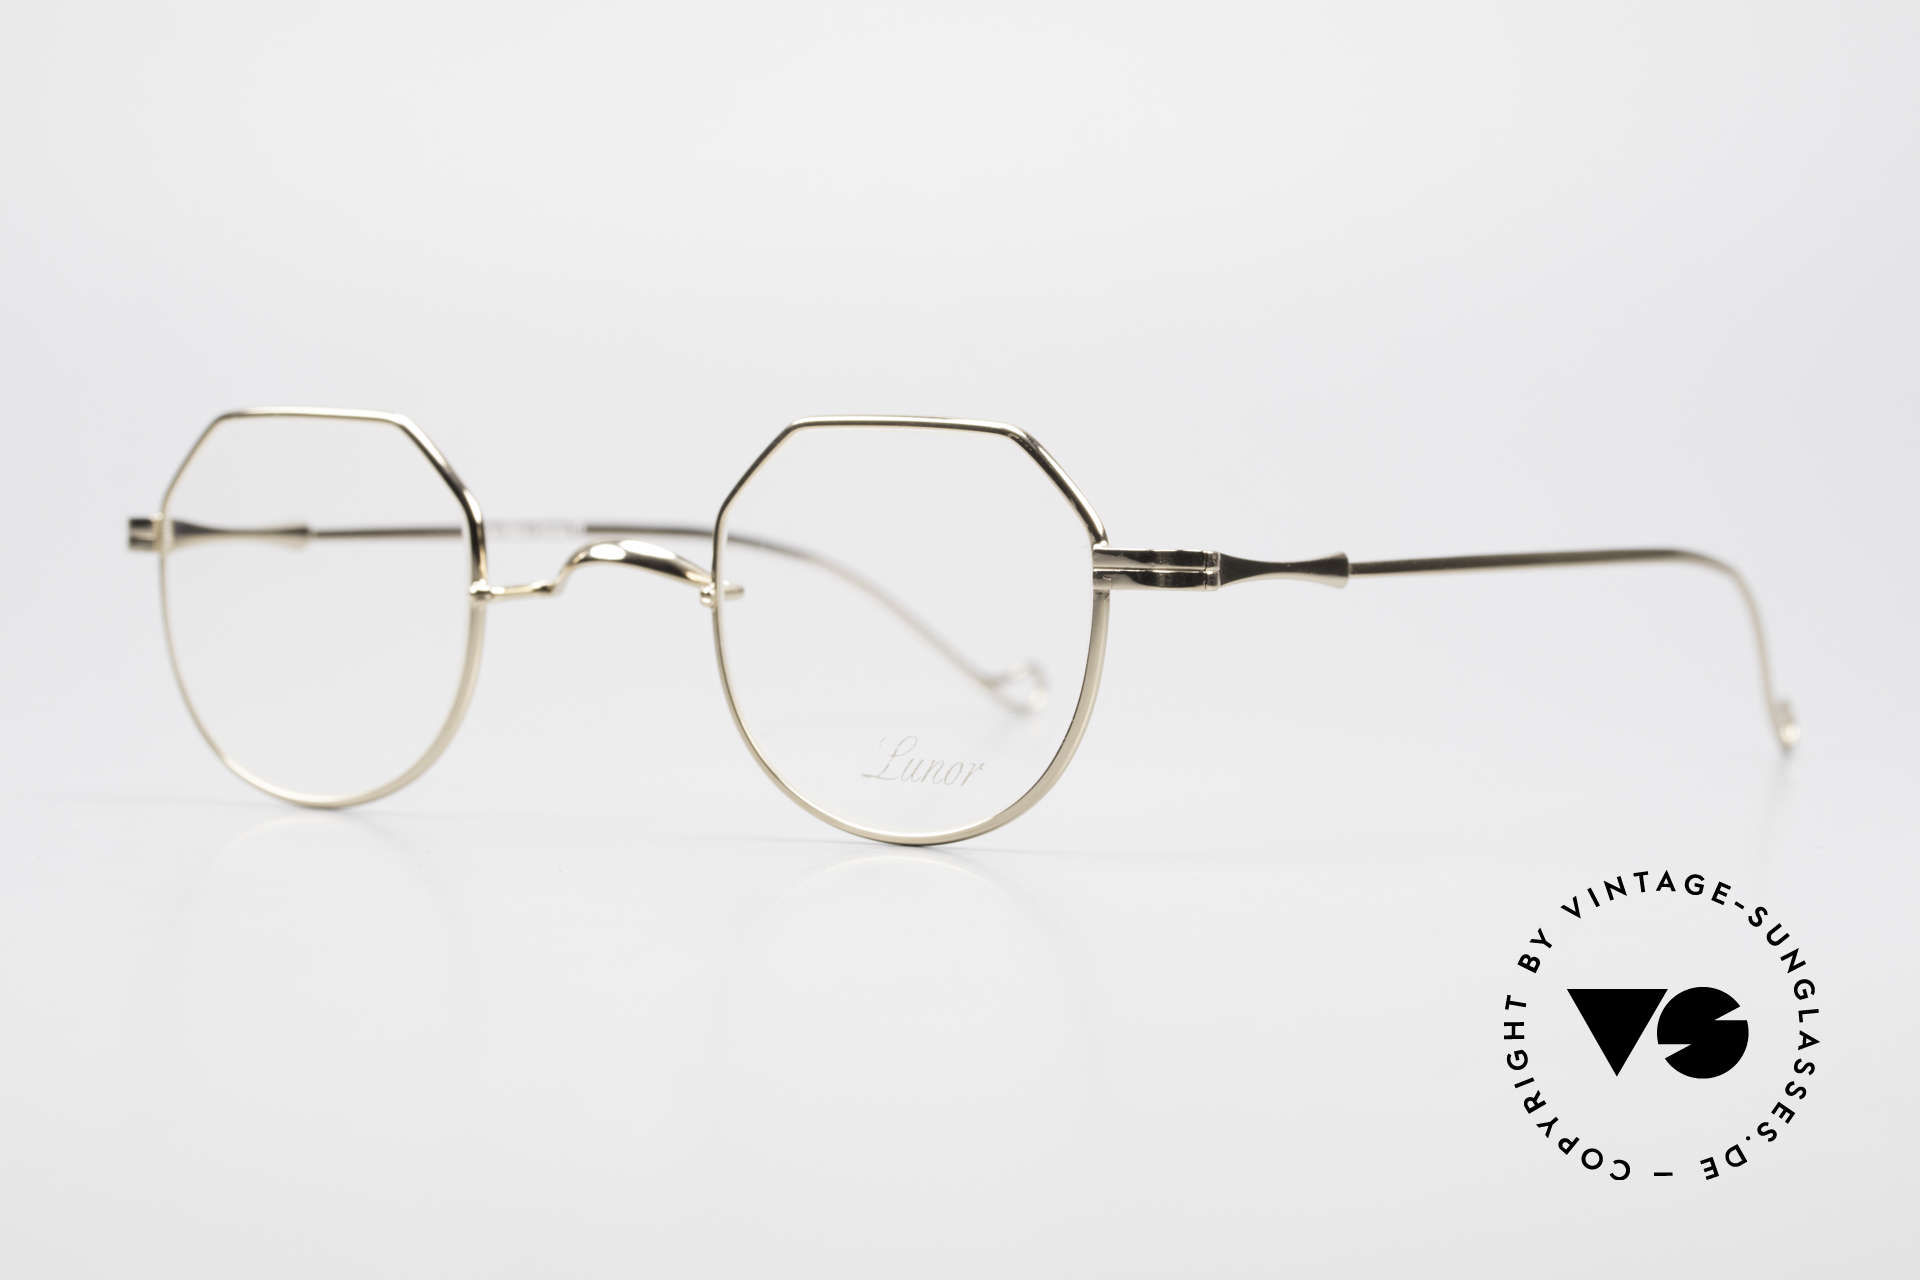 """Lunor II 18 Hybrid Panto Frame Gold Plated, well-known for the """"W-bridge"""" & the plain frame designs, Made for Men and Women"""